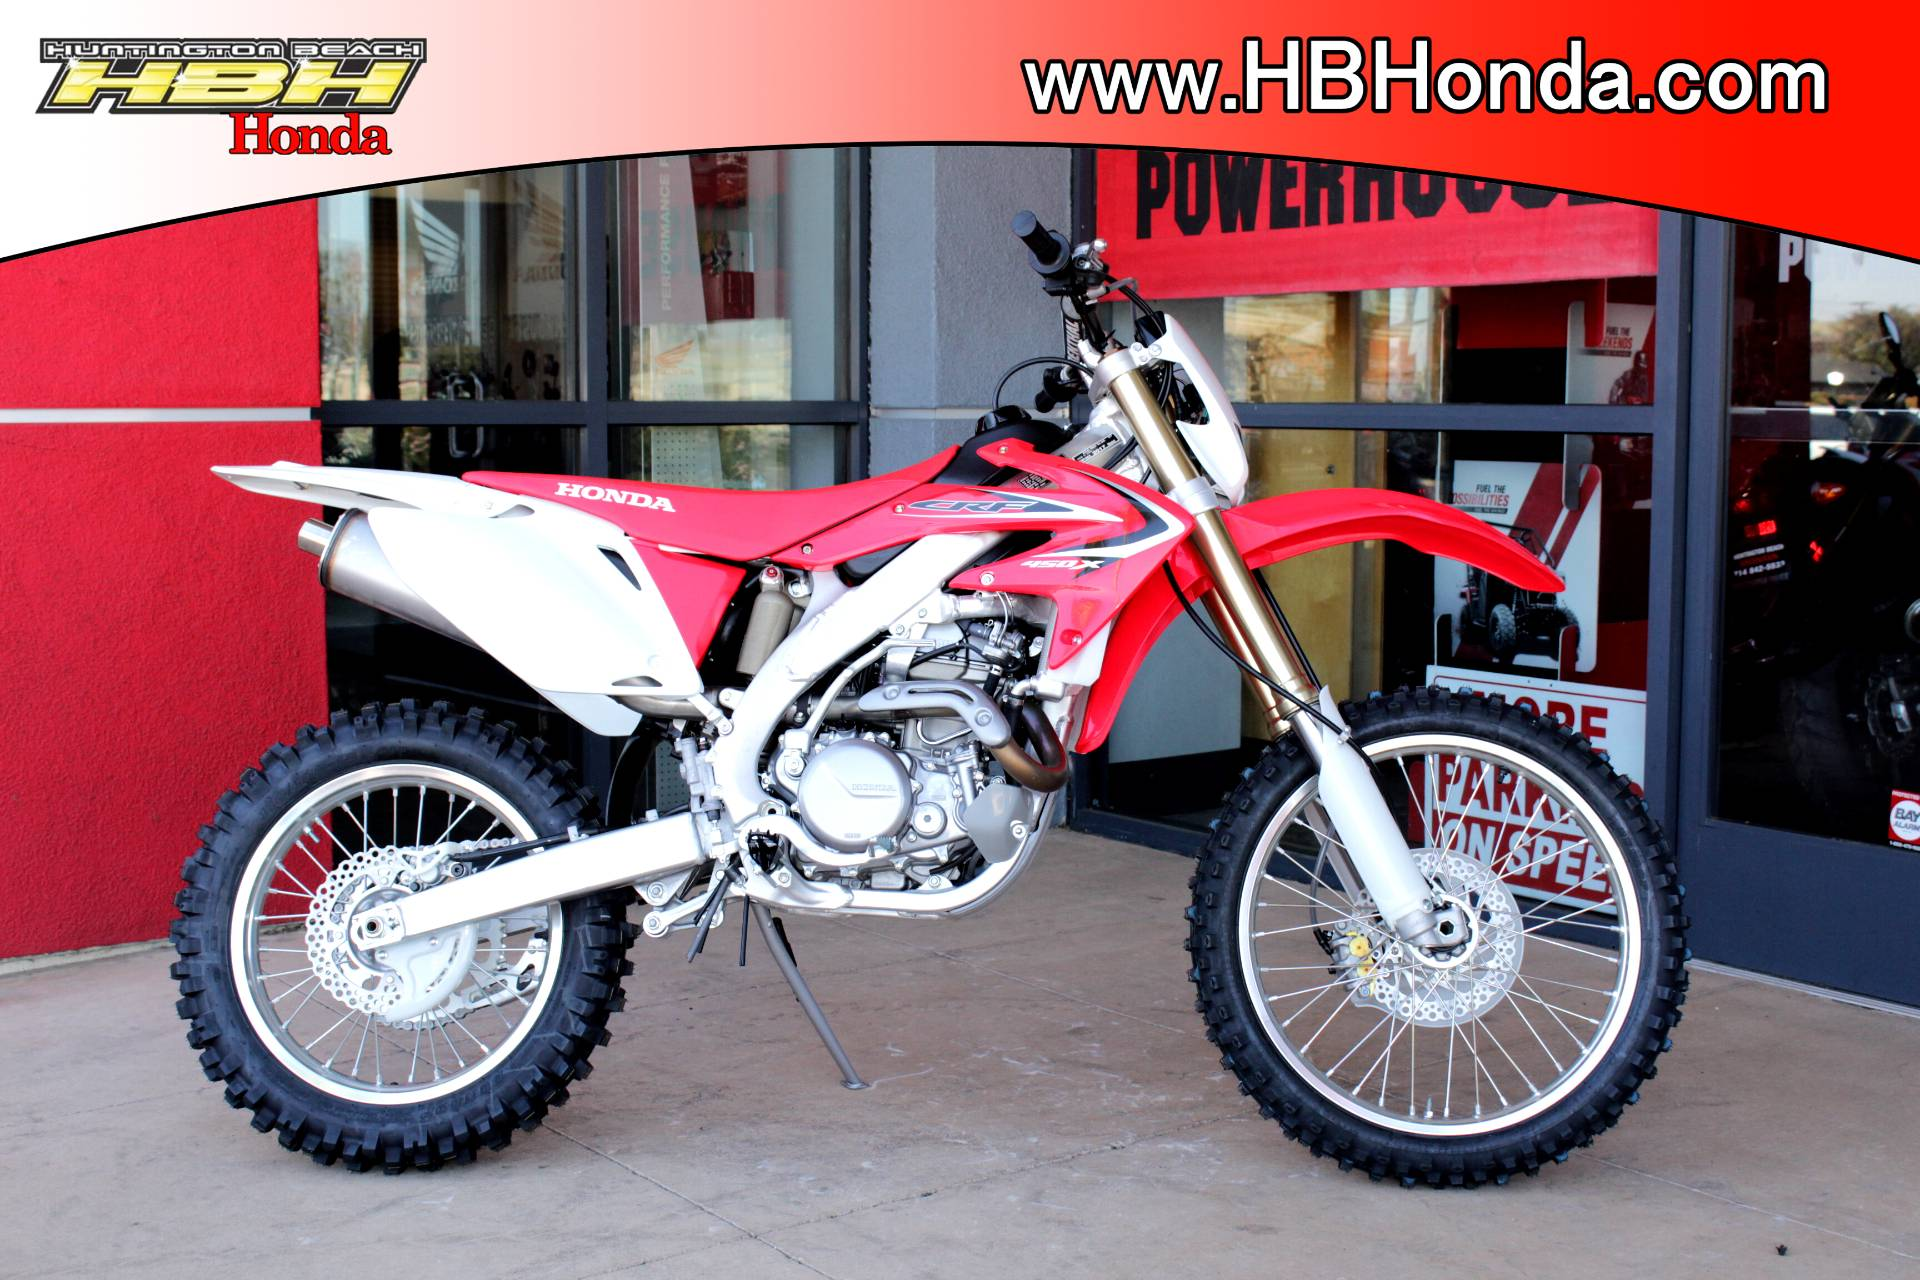 Crf450x For Sale >> New 2017 Honda Crf450x Motorcycles For Sale In Huntington Beach Ca